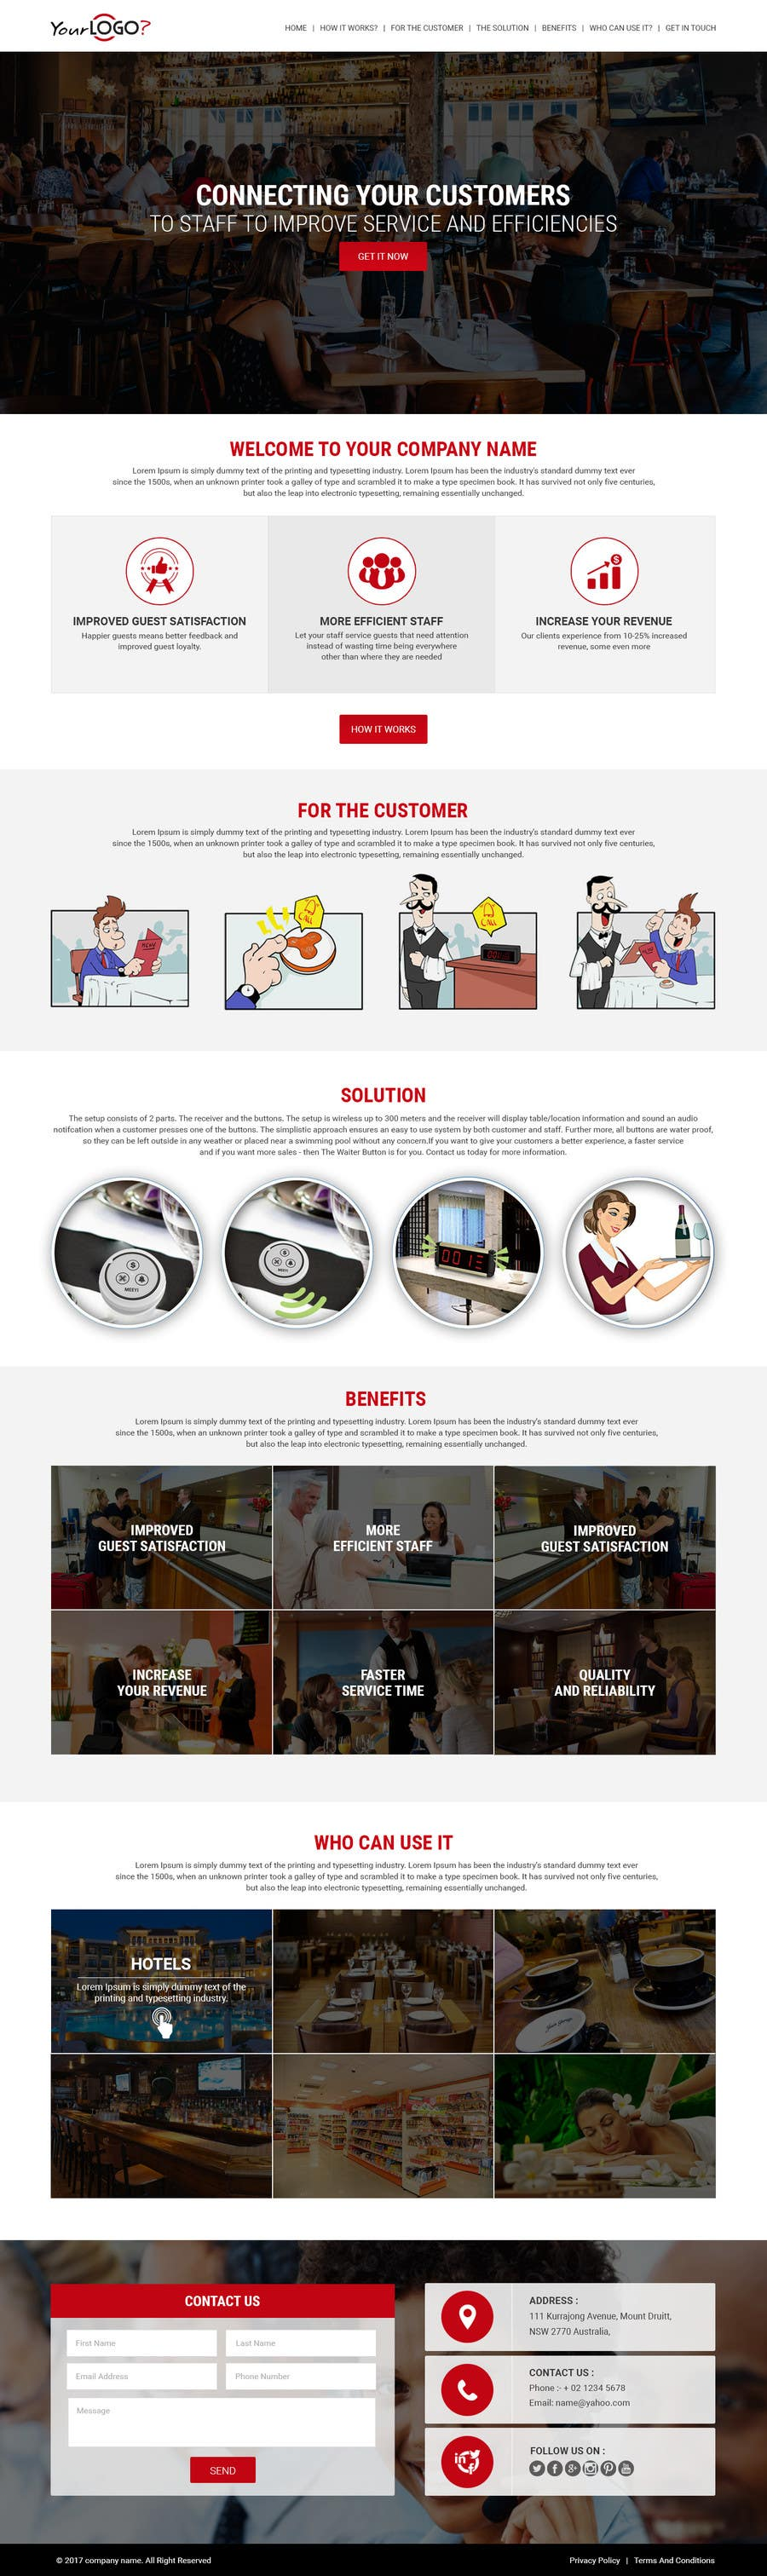 Proposition n°18 du concours Design a Website Mockup for a new product